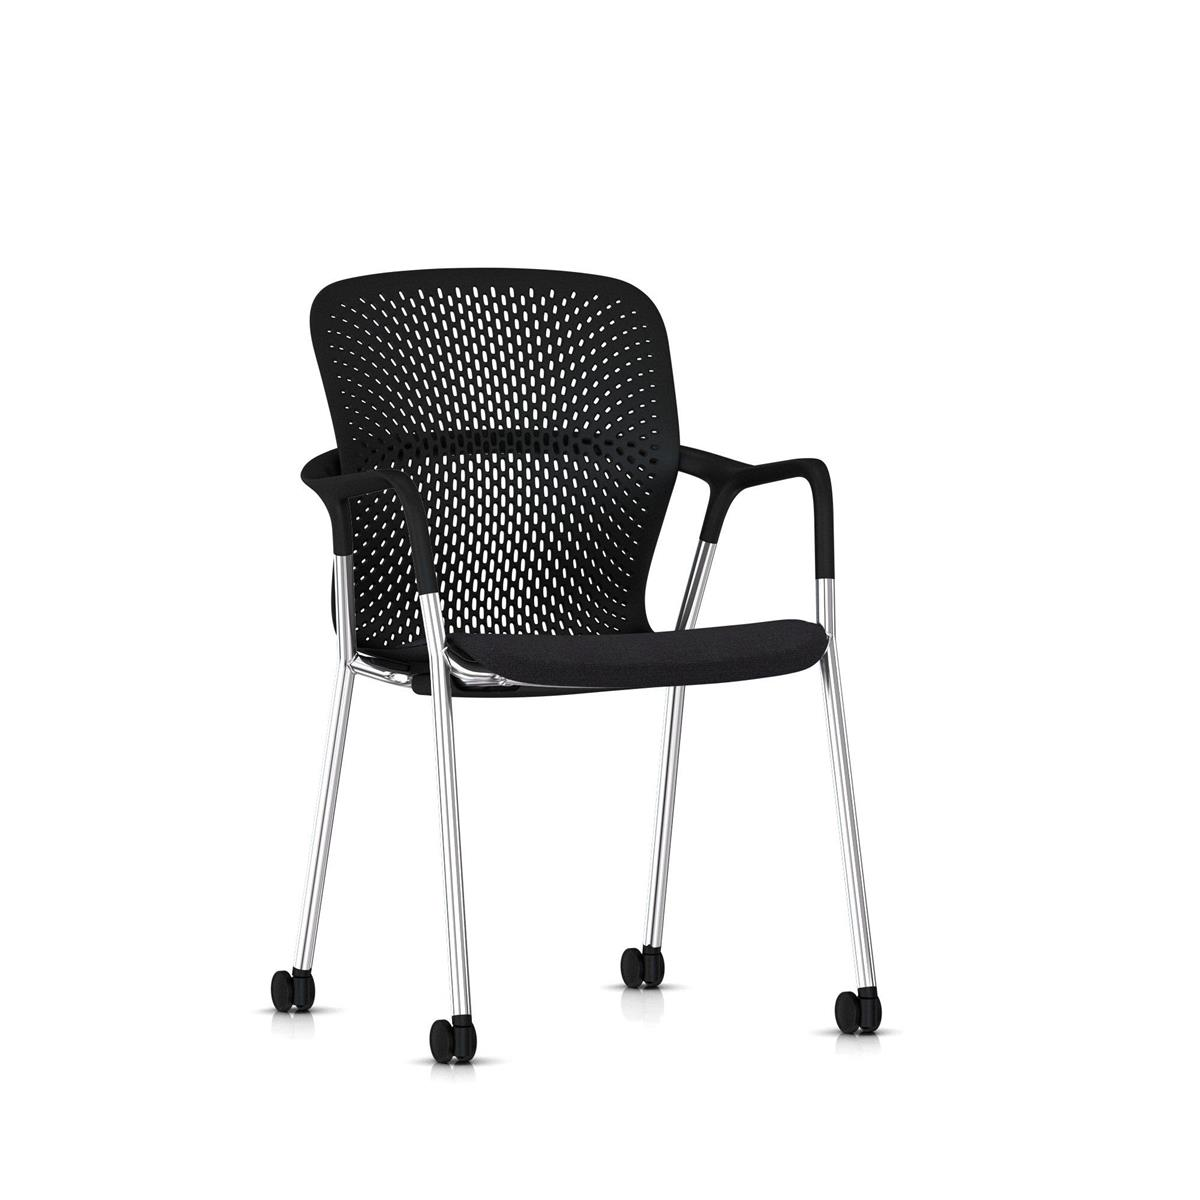 Keyn 4 Leg Armchair Chrome & Black - Camira Sprint tekstil og trinser